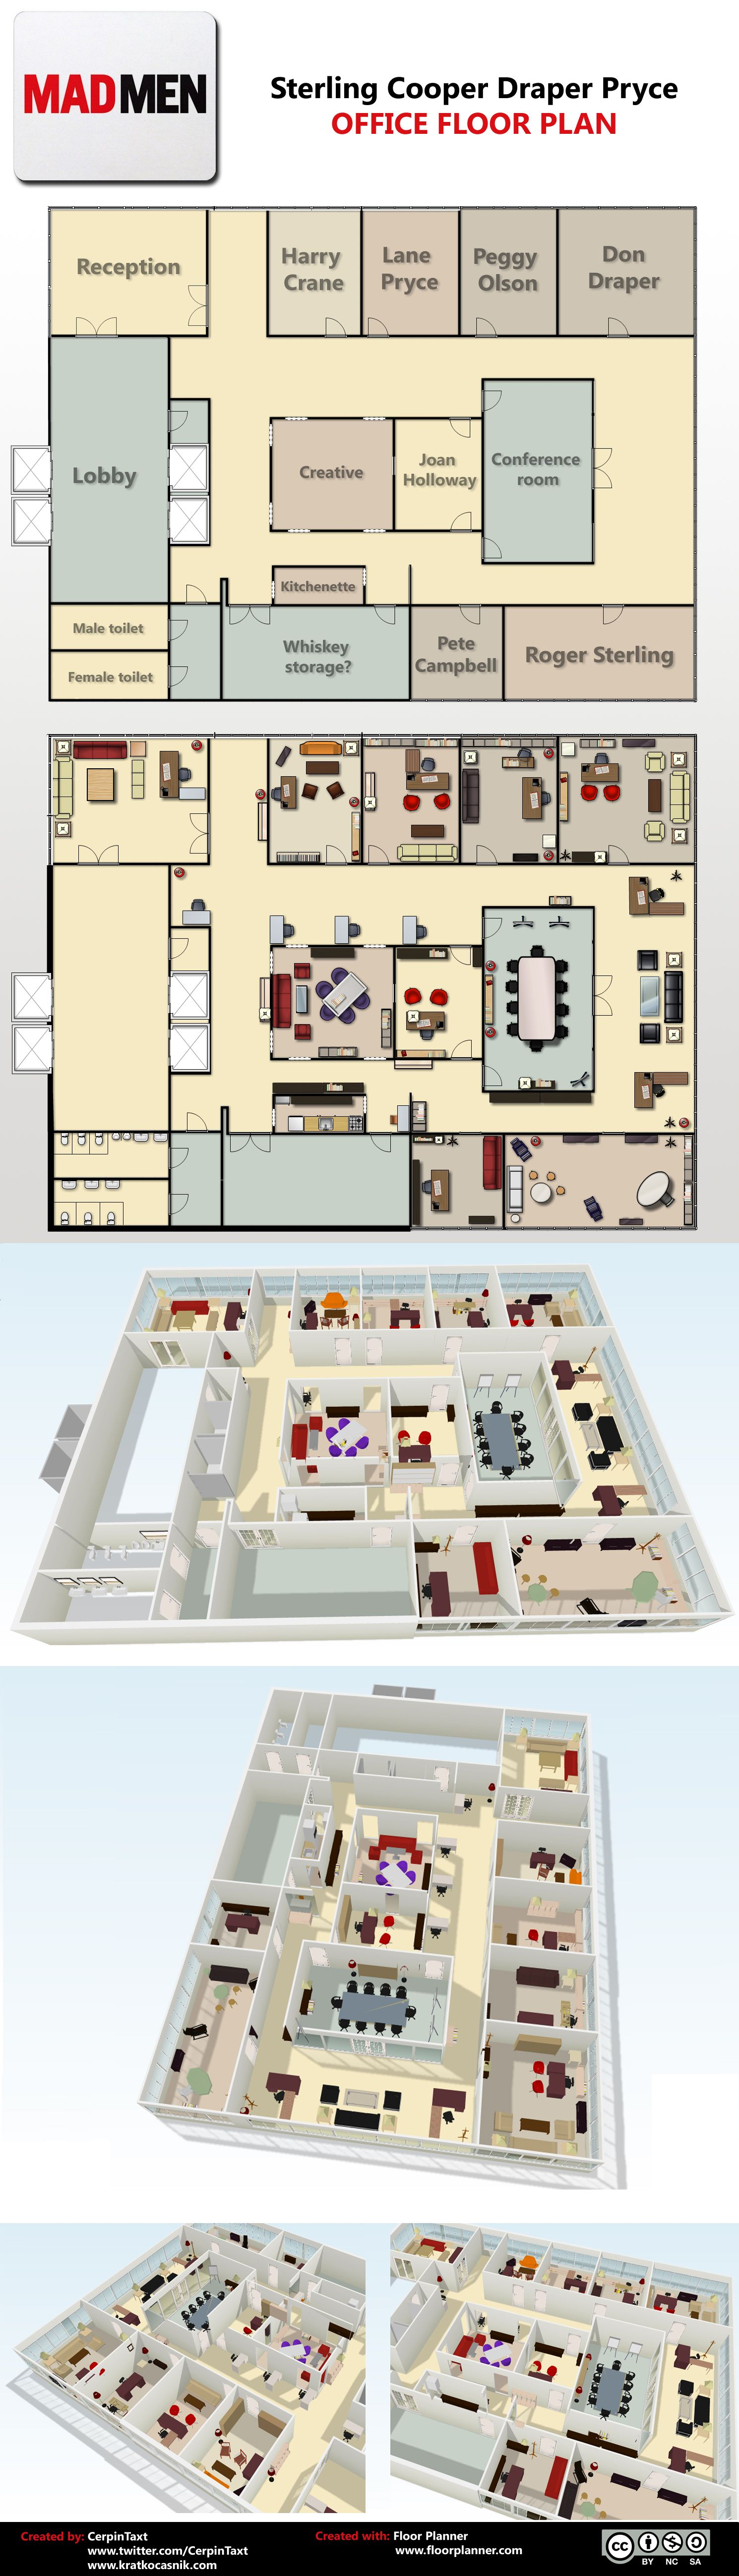 Mad Men Office Floor Plan I Love That There Are People As